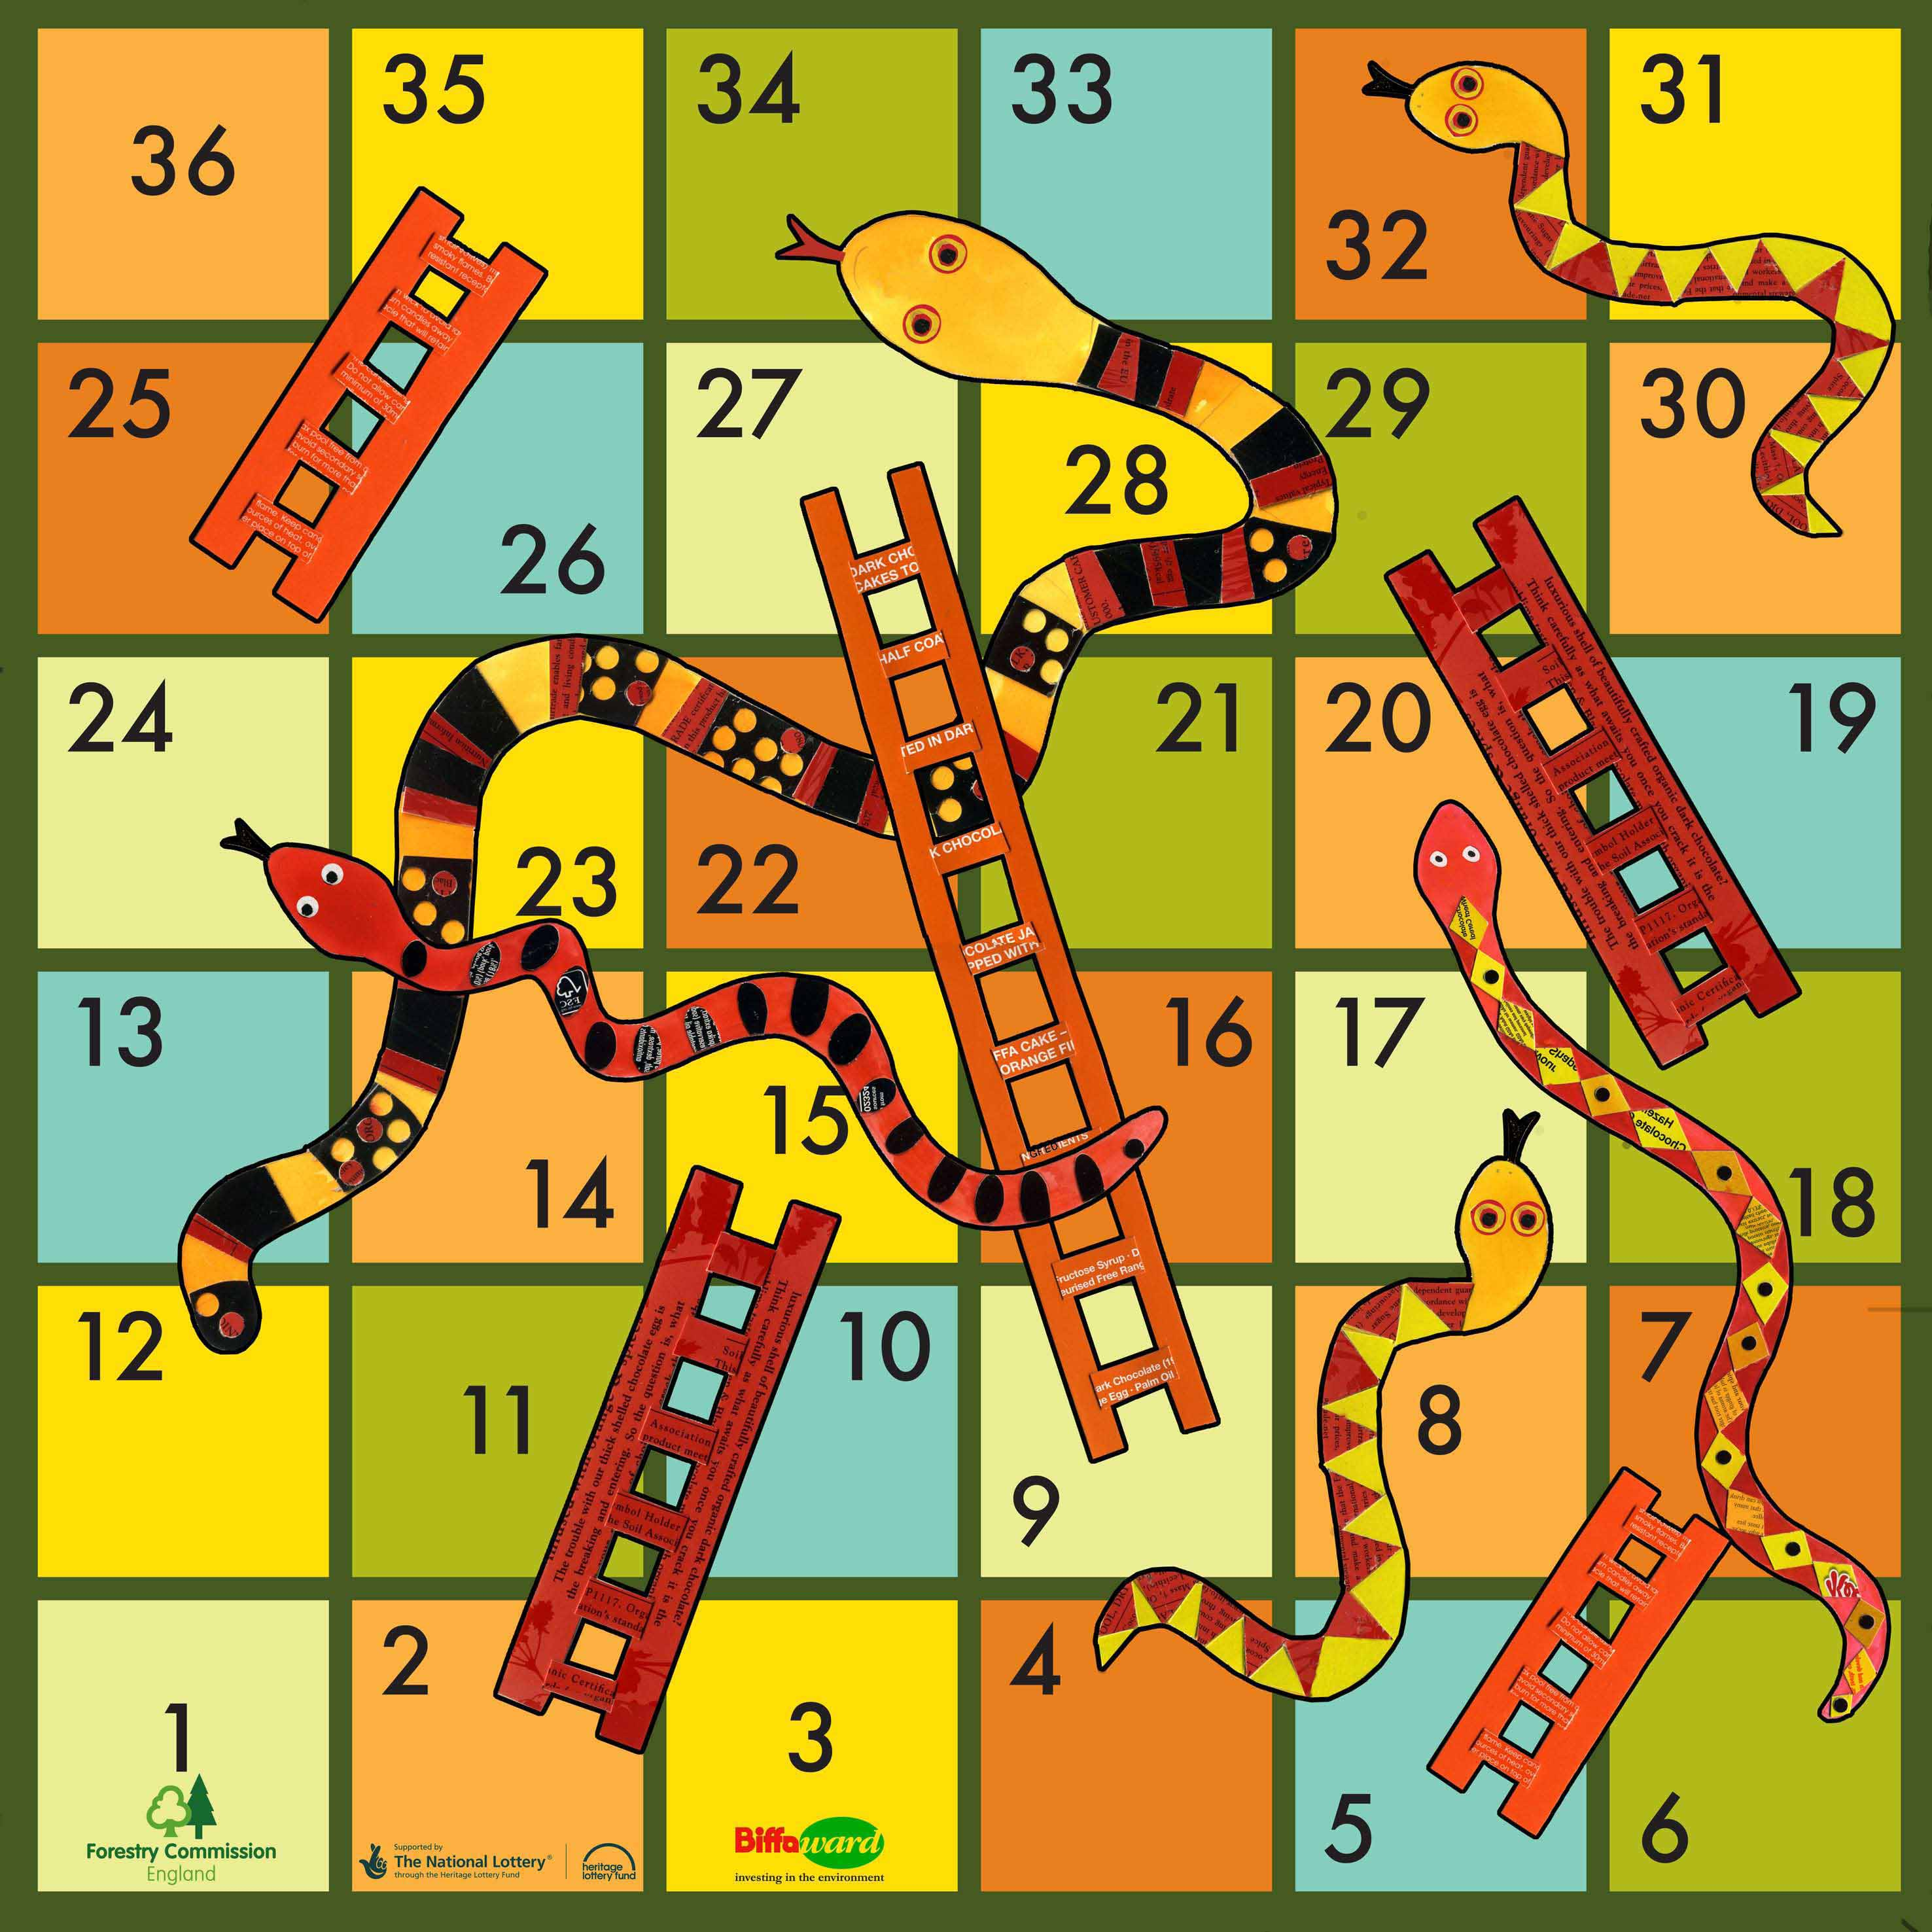 Winning A Snakes And Ladders Game Programming With Prateek